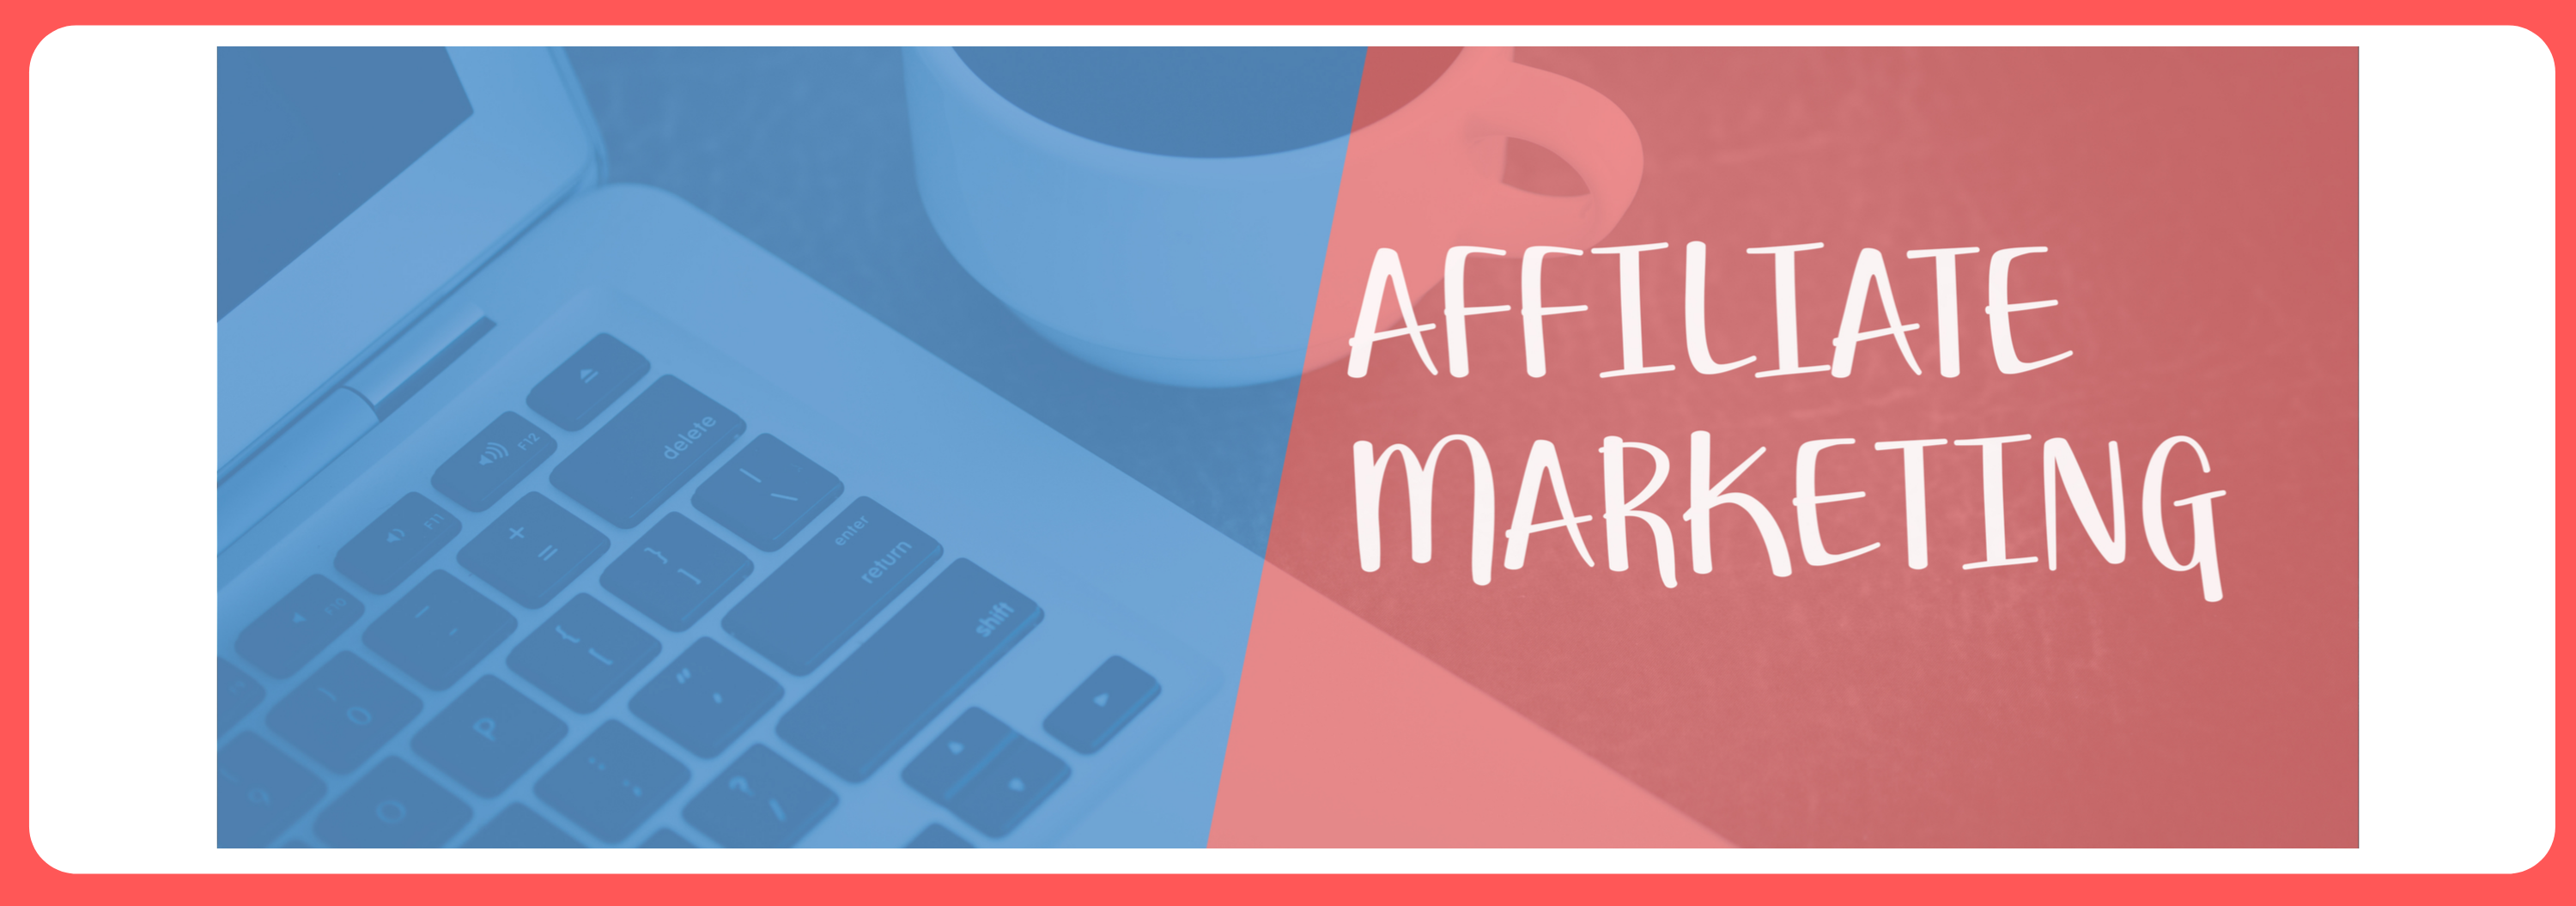 Wat is affiliate marketing en hoe kan jij ermee beginnen in 2020